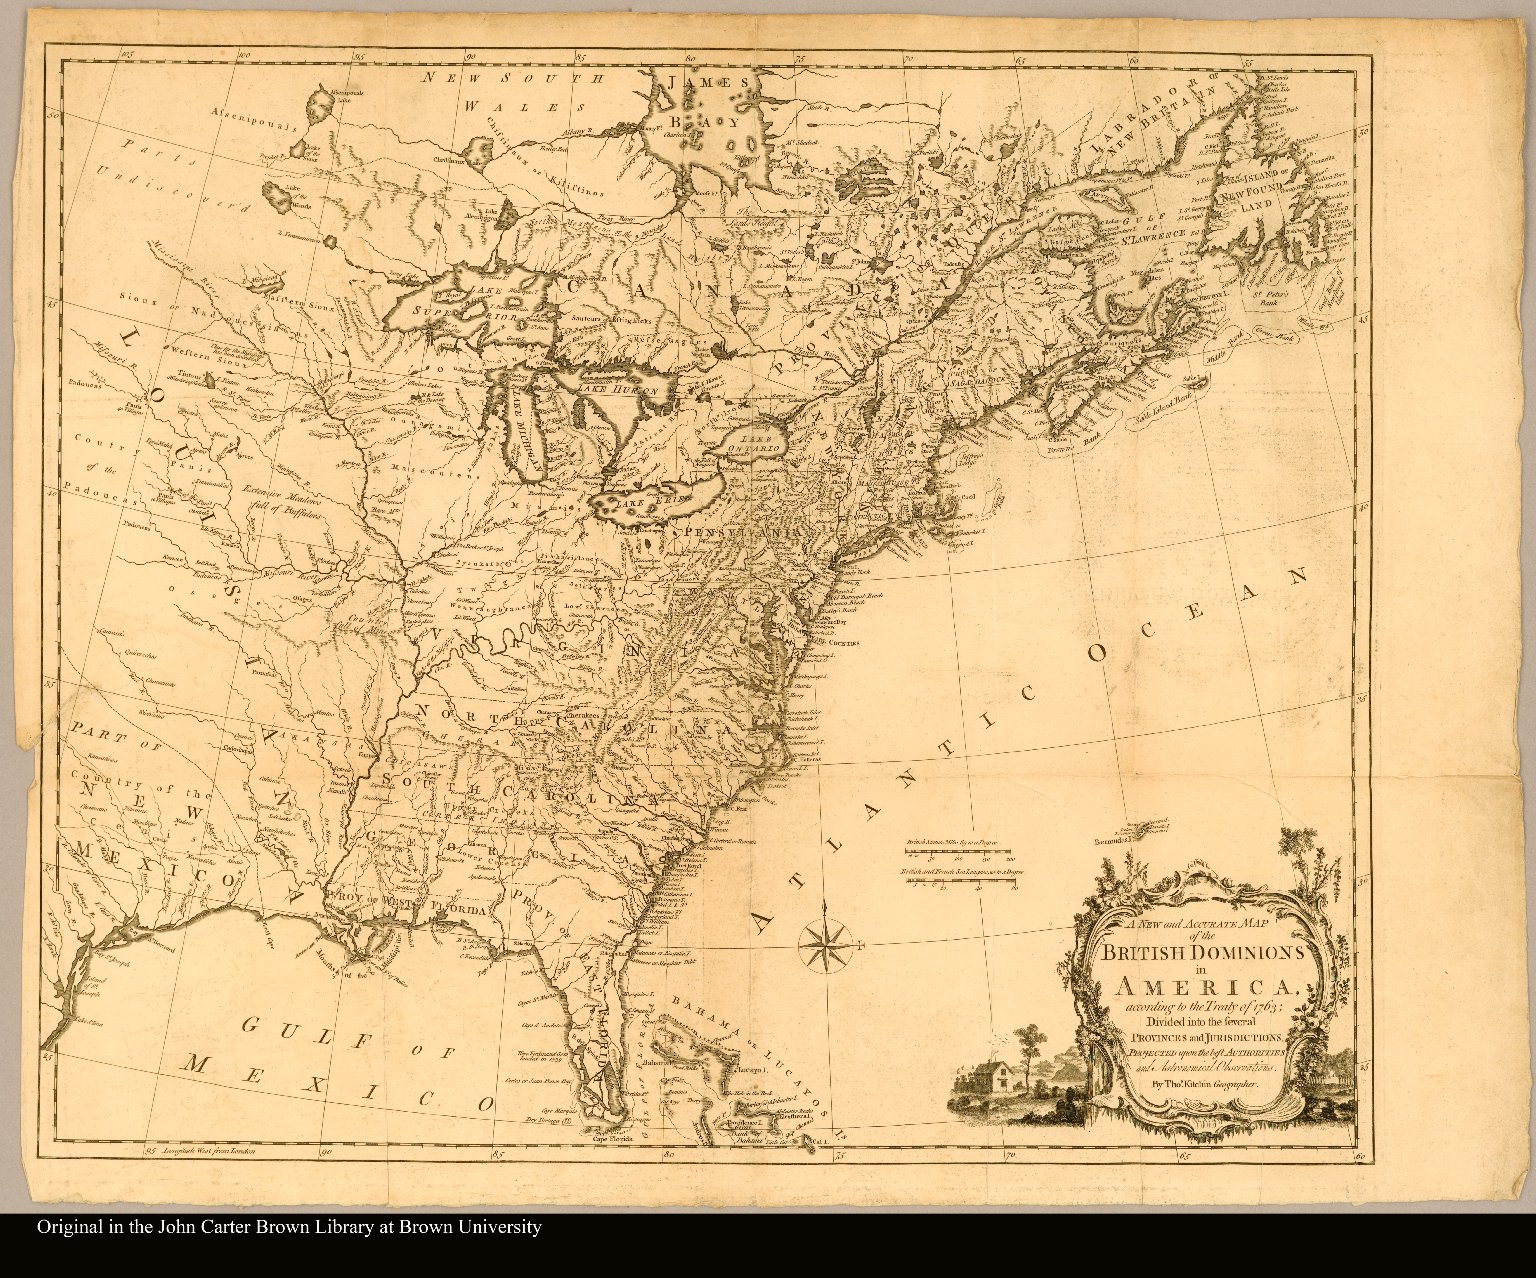 A new and accurate map of the British dominions in America, according to the Treaty of 1763; divided into the several provinces and jurisdictions. Projected upon the best authorities and astronomical observations. By Thos. Kitchin, geographer